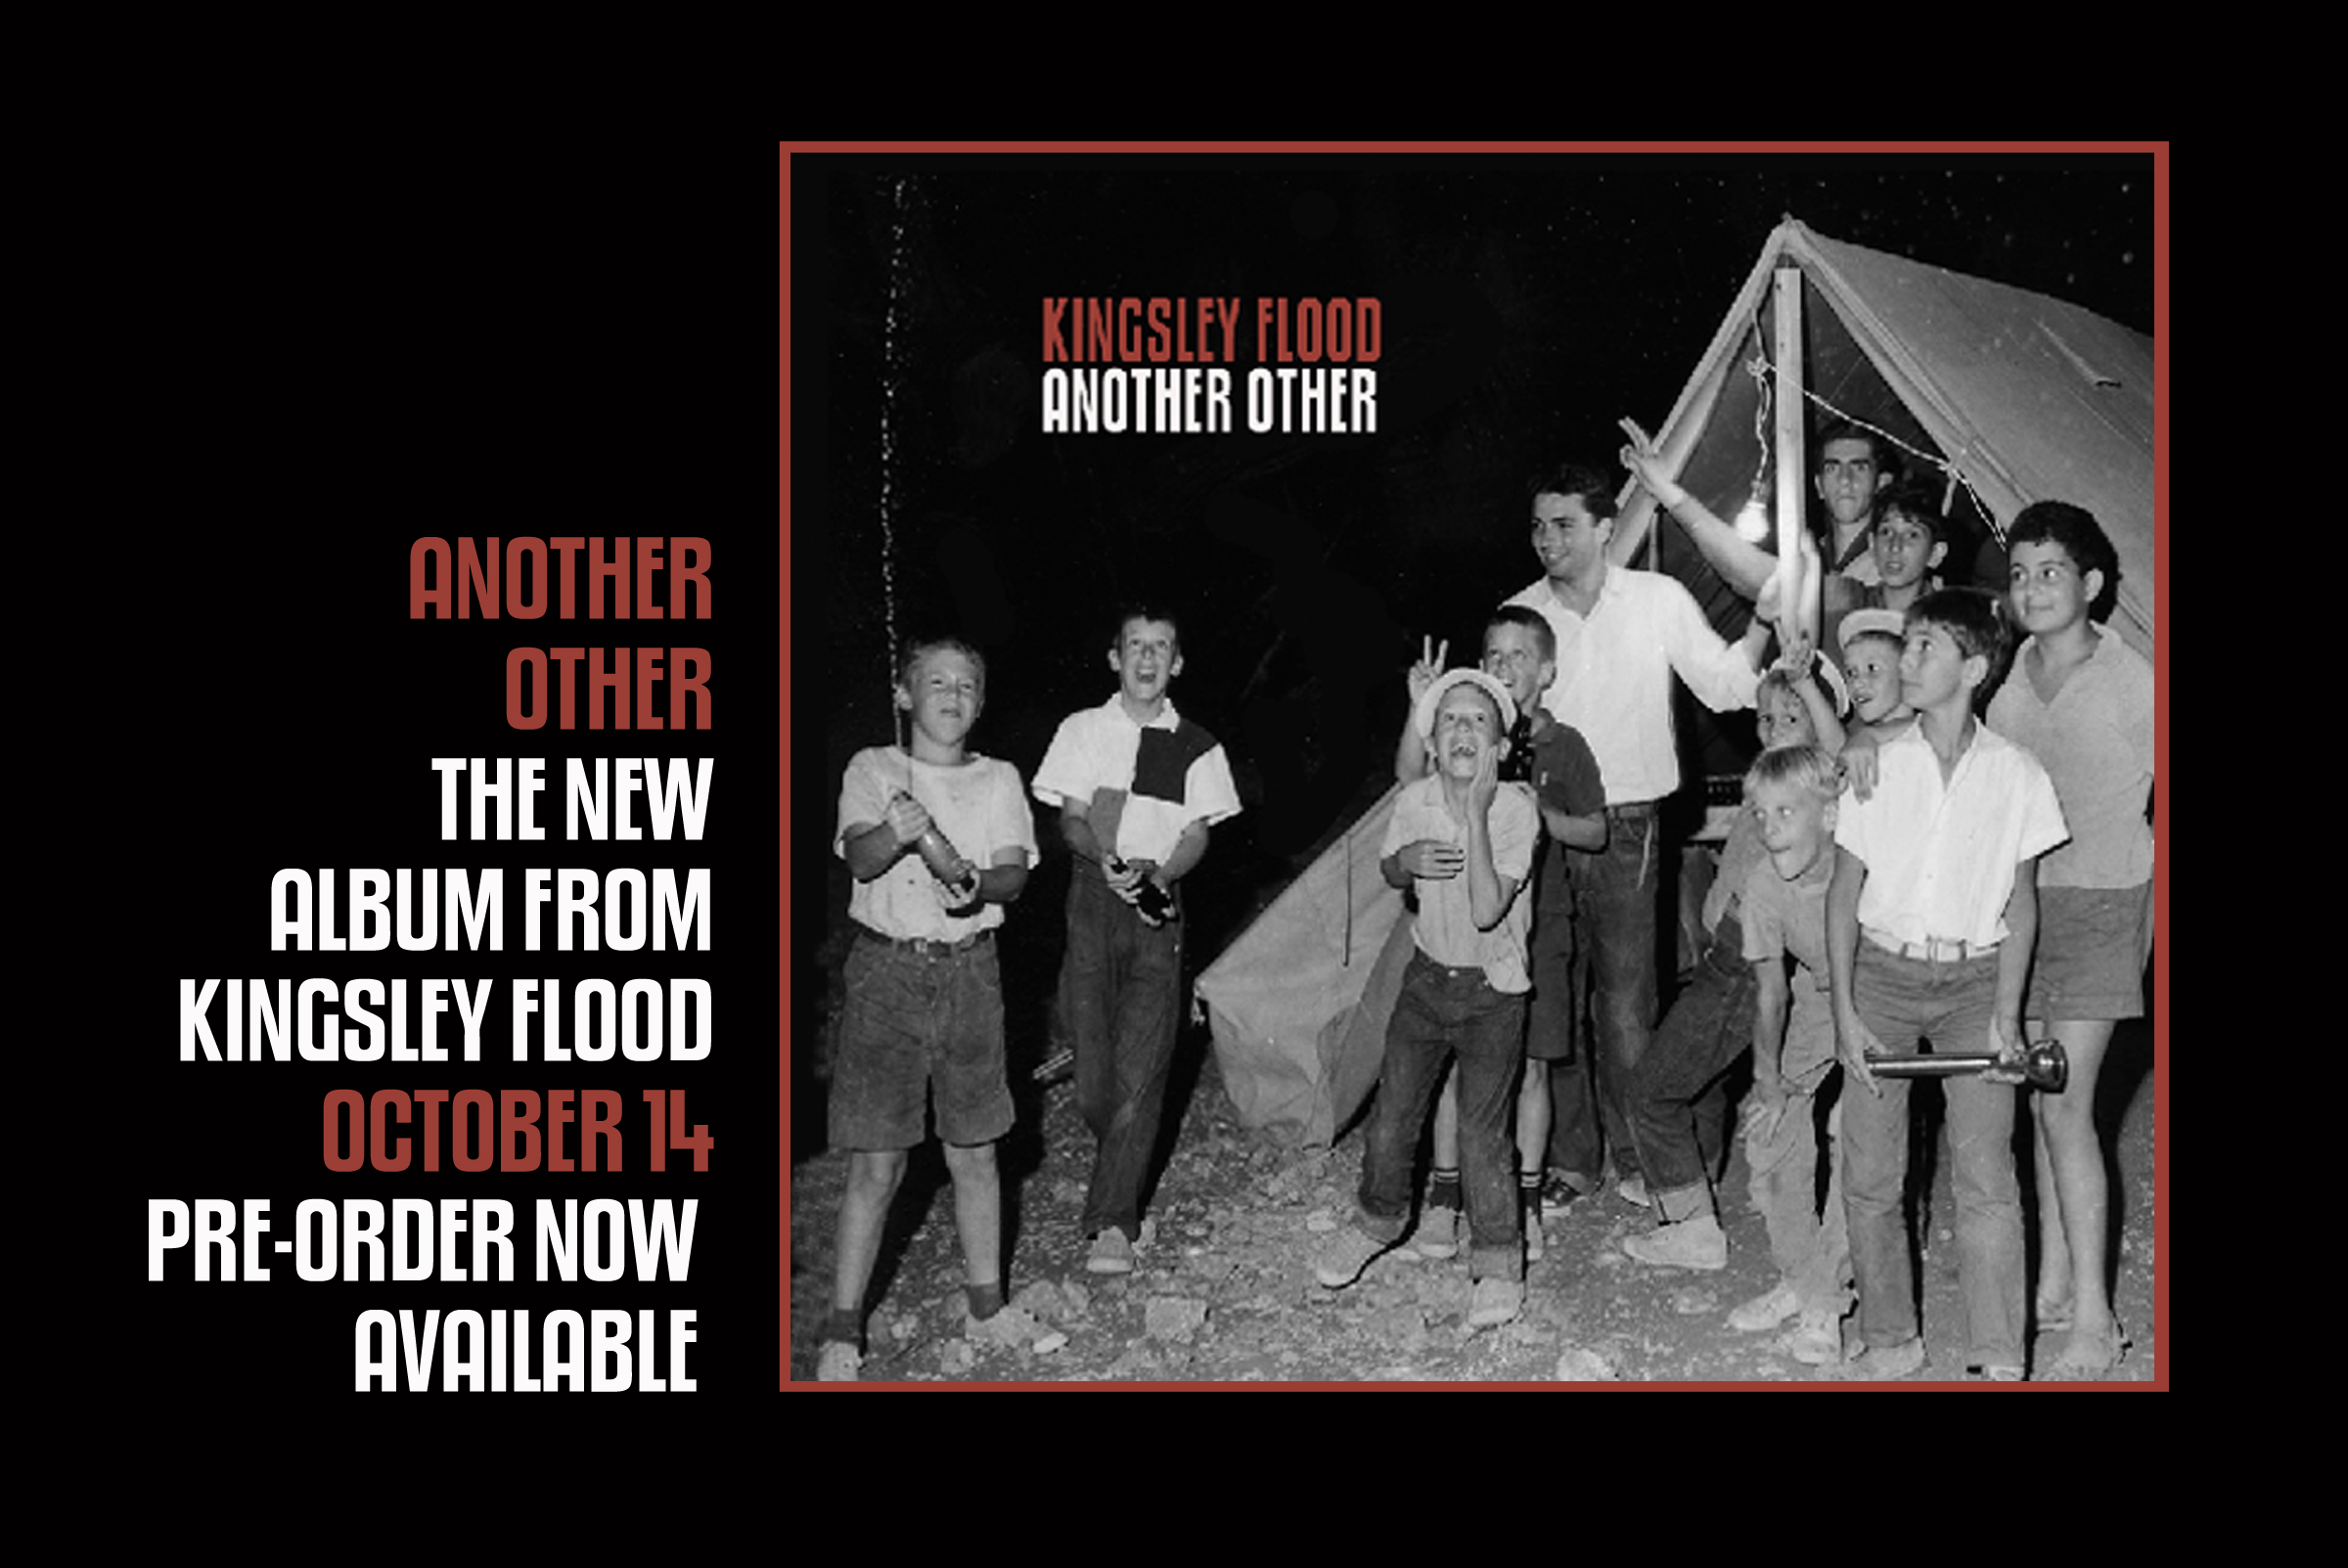 Another Other out on Oct. 14